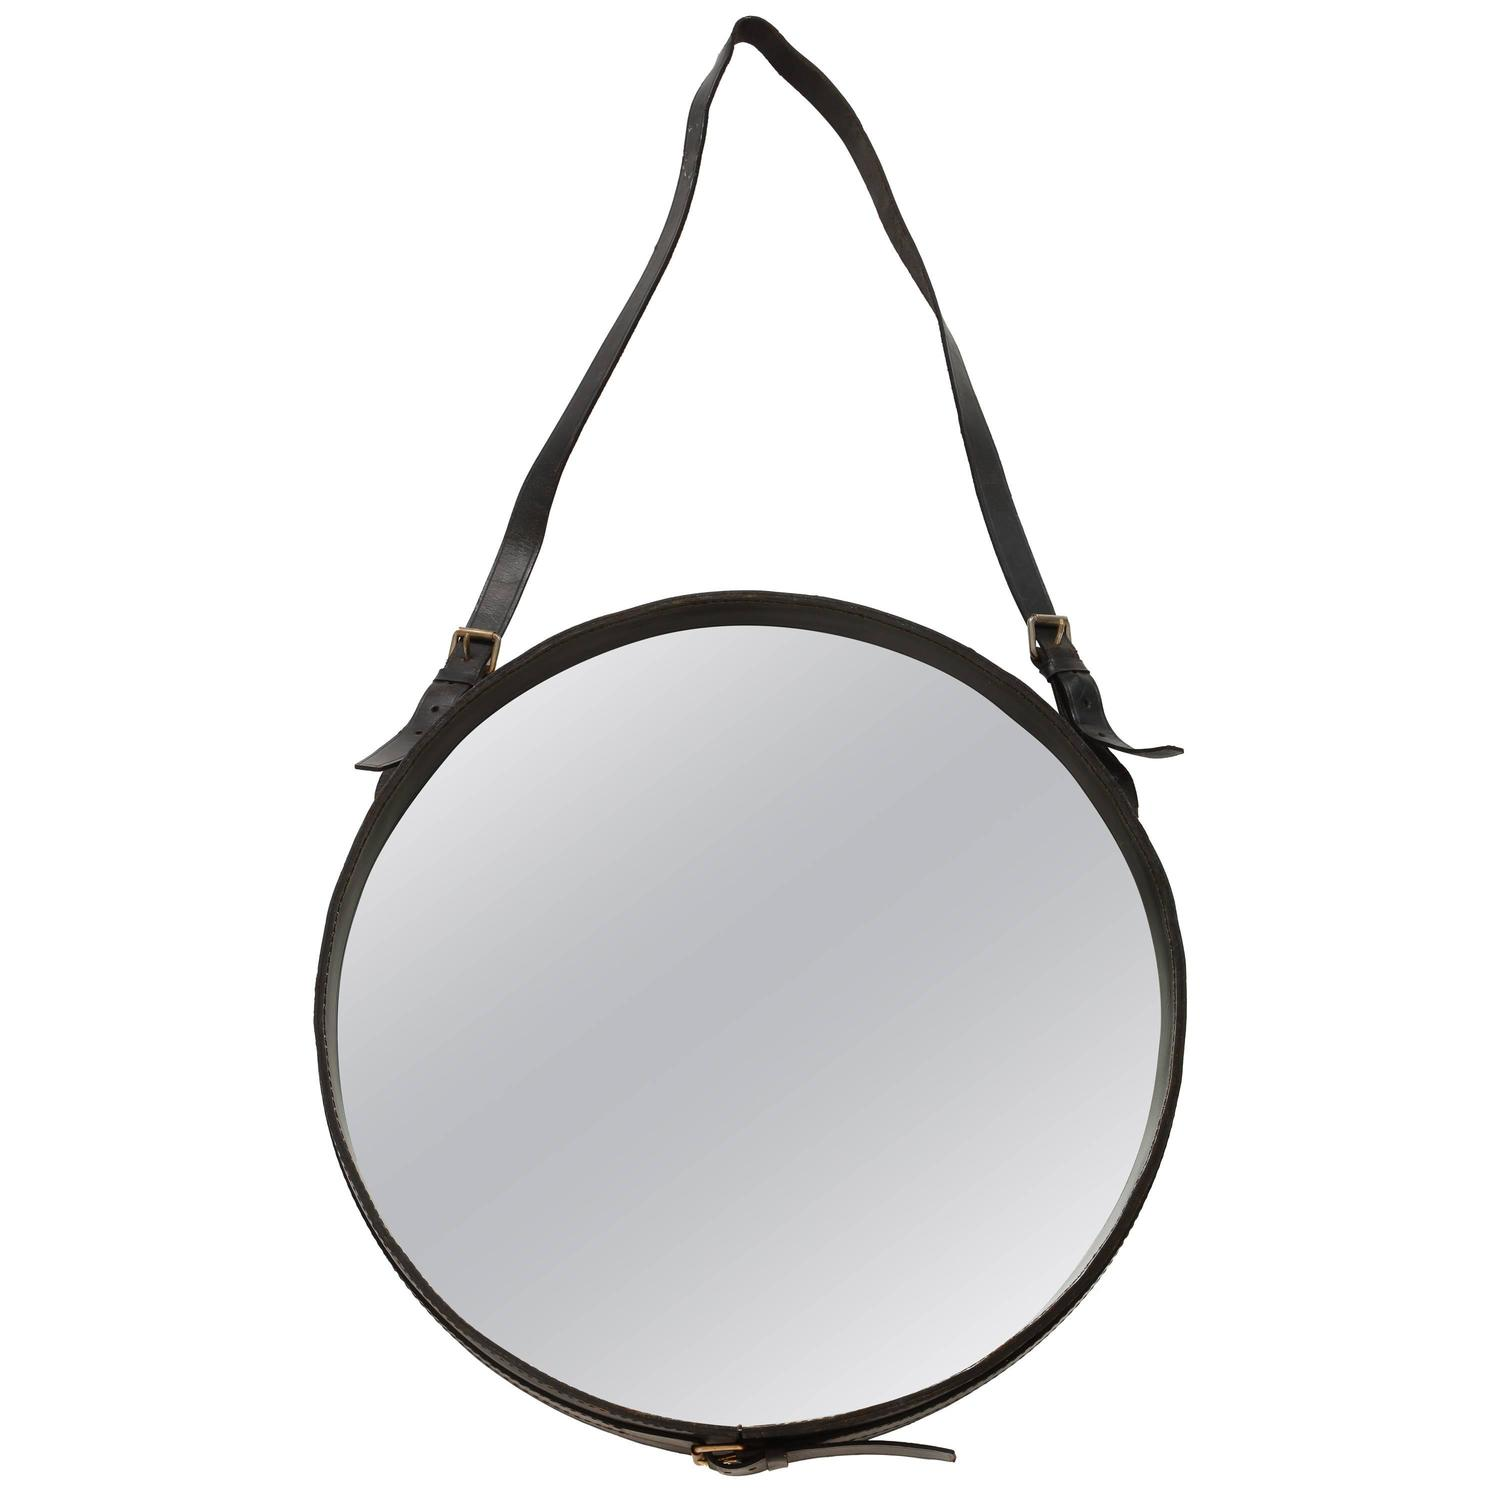 Jacques adnet design modernist round leather hanging wall mirror authentic mid century jacques adnet leather round wall mirror black 1950 amipublicfo Choice Image